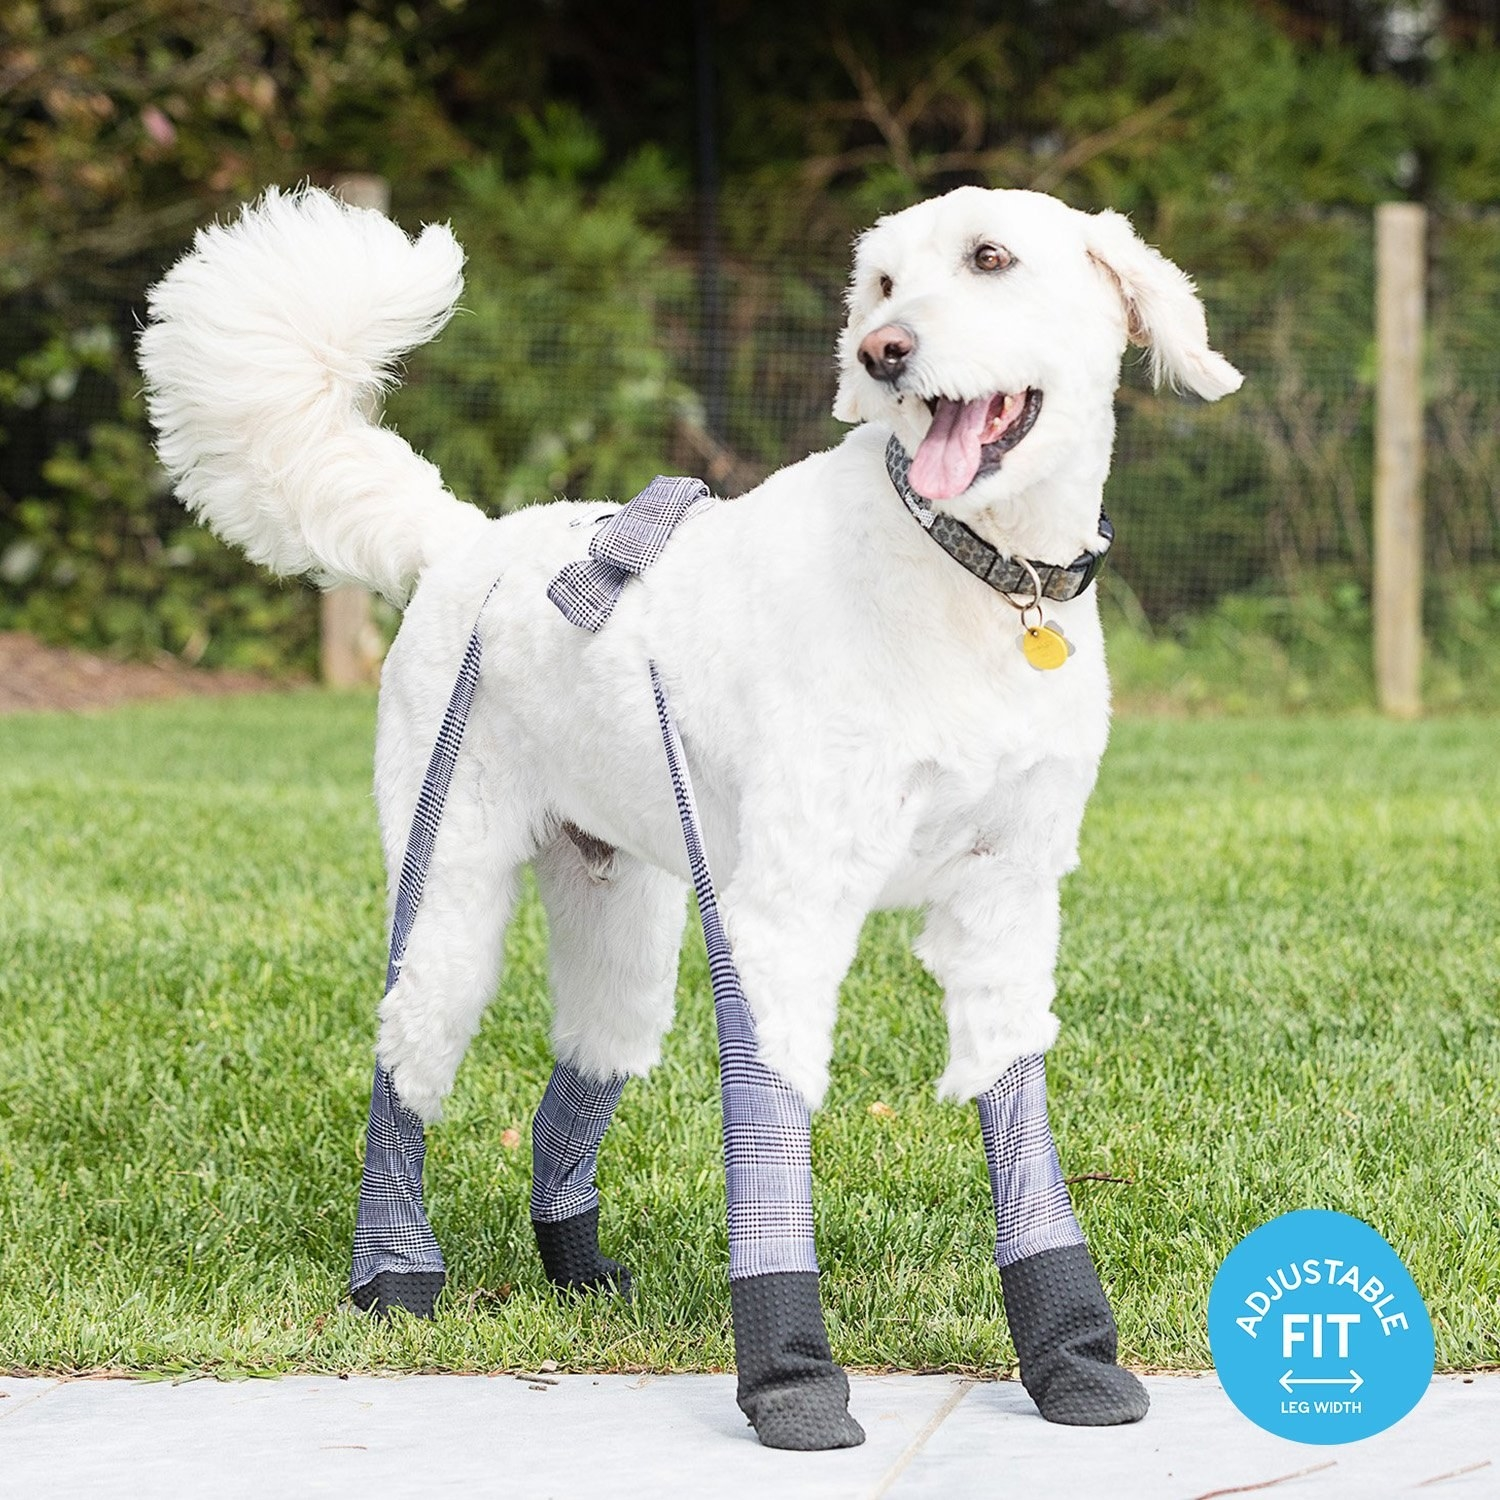 Dog wearing gray plaid leggings